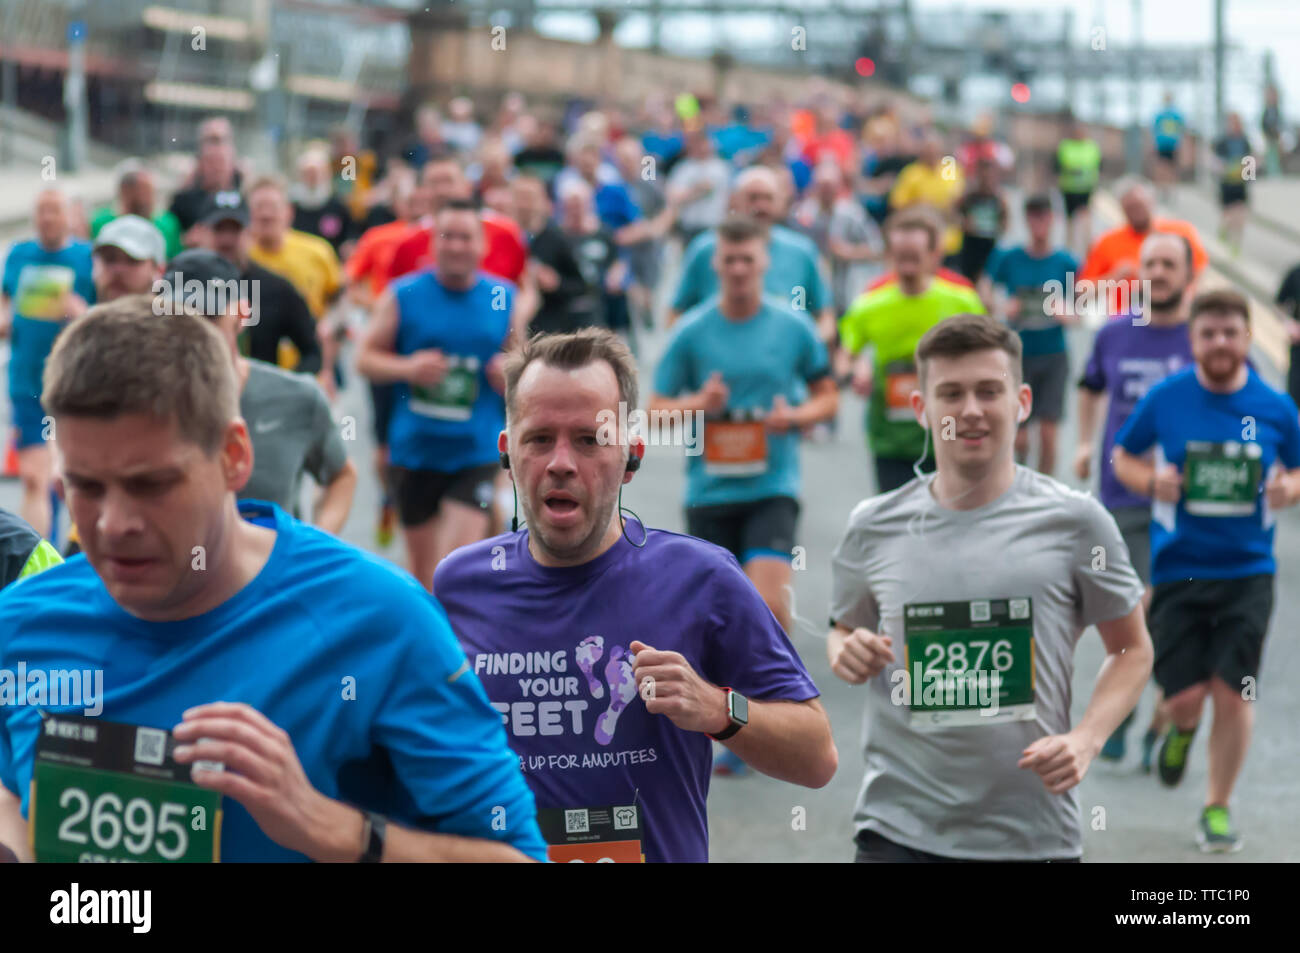 Glasgow, Scotland, UK. 16th June, 2019. Runners crossing the King George V Bridge during the Men's 10K Run which has been an annual event since 2004. Thousands of runners take to the streets of the city to get fit, fundraise, and raise awareness of men's health issues. The run coincides with Fathers Day and starts at the Riverside Museum and  finishes at George Square. Credit: Skully/Alamy Live News - Stock Image